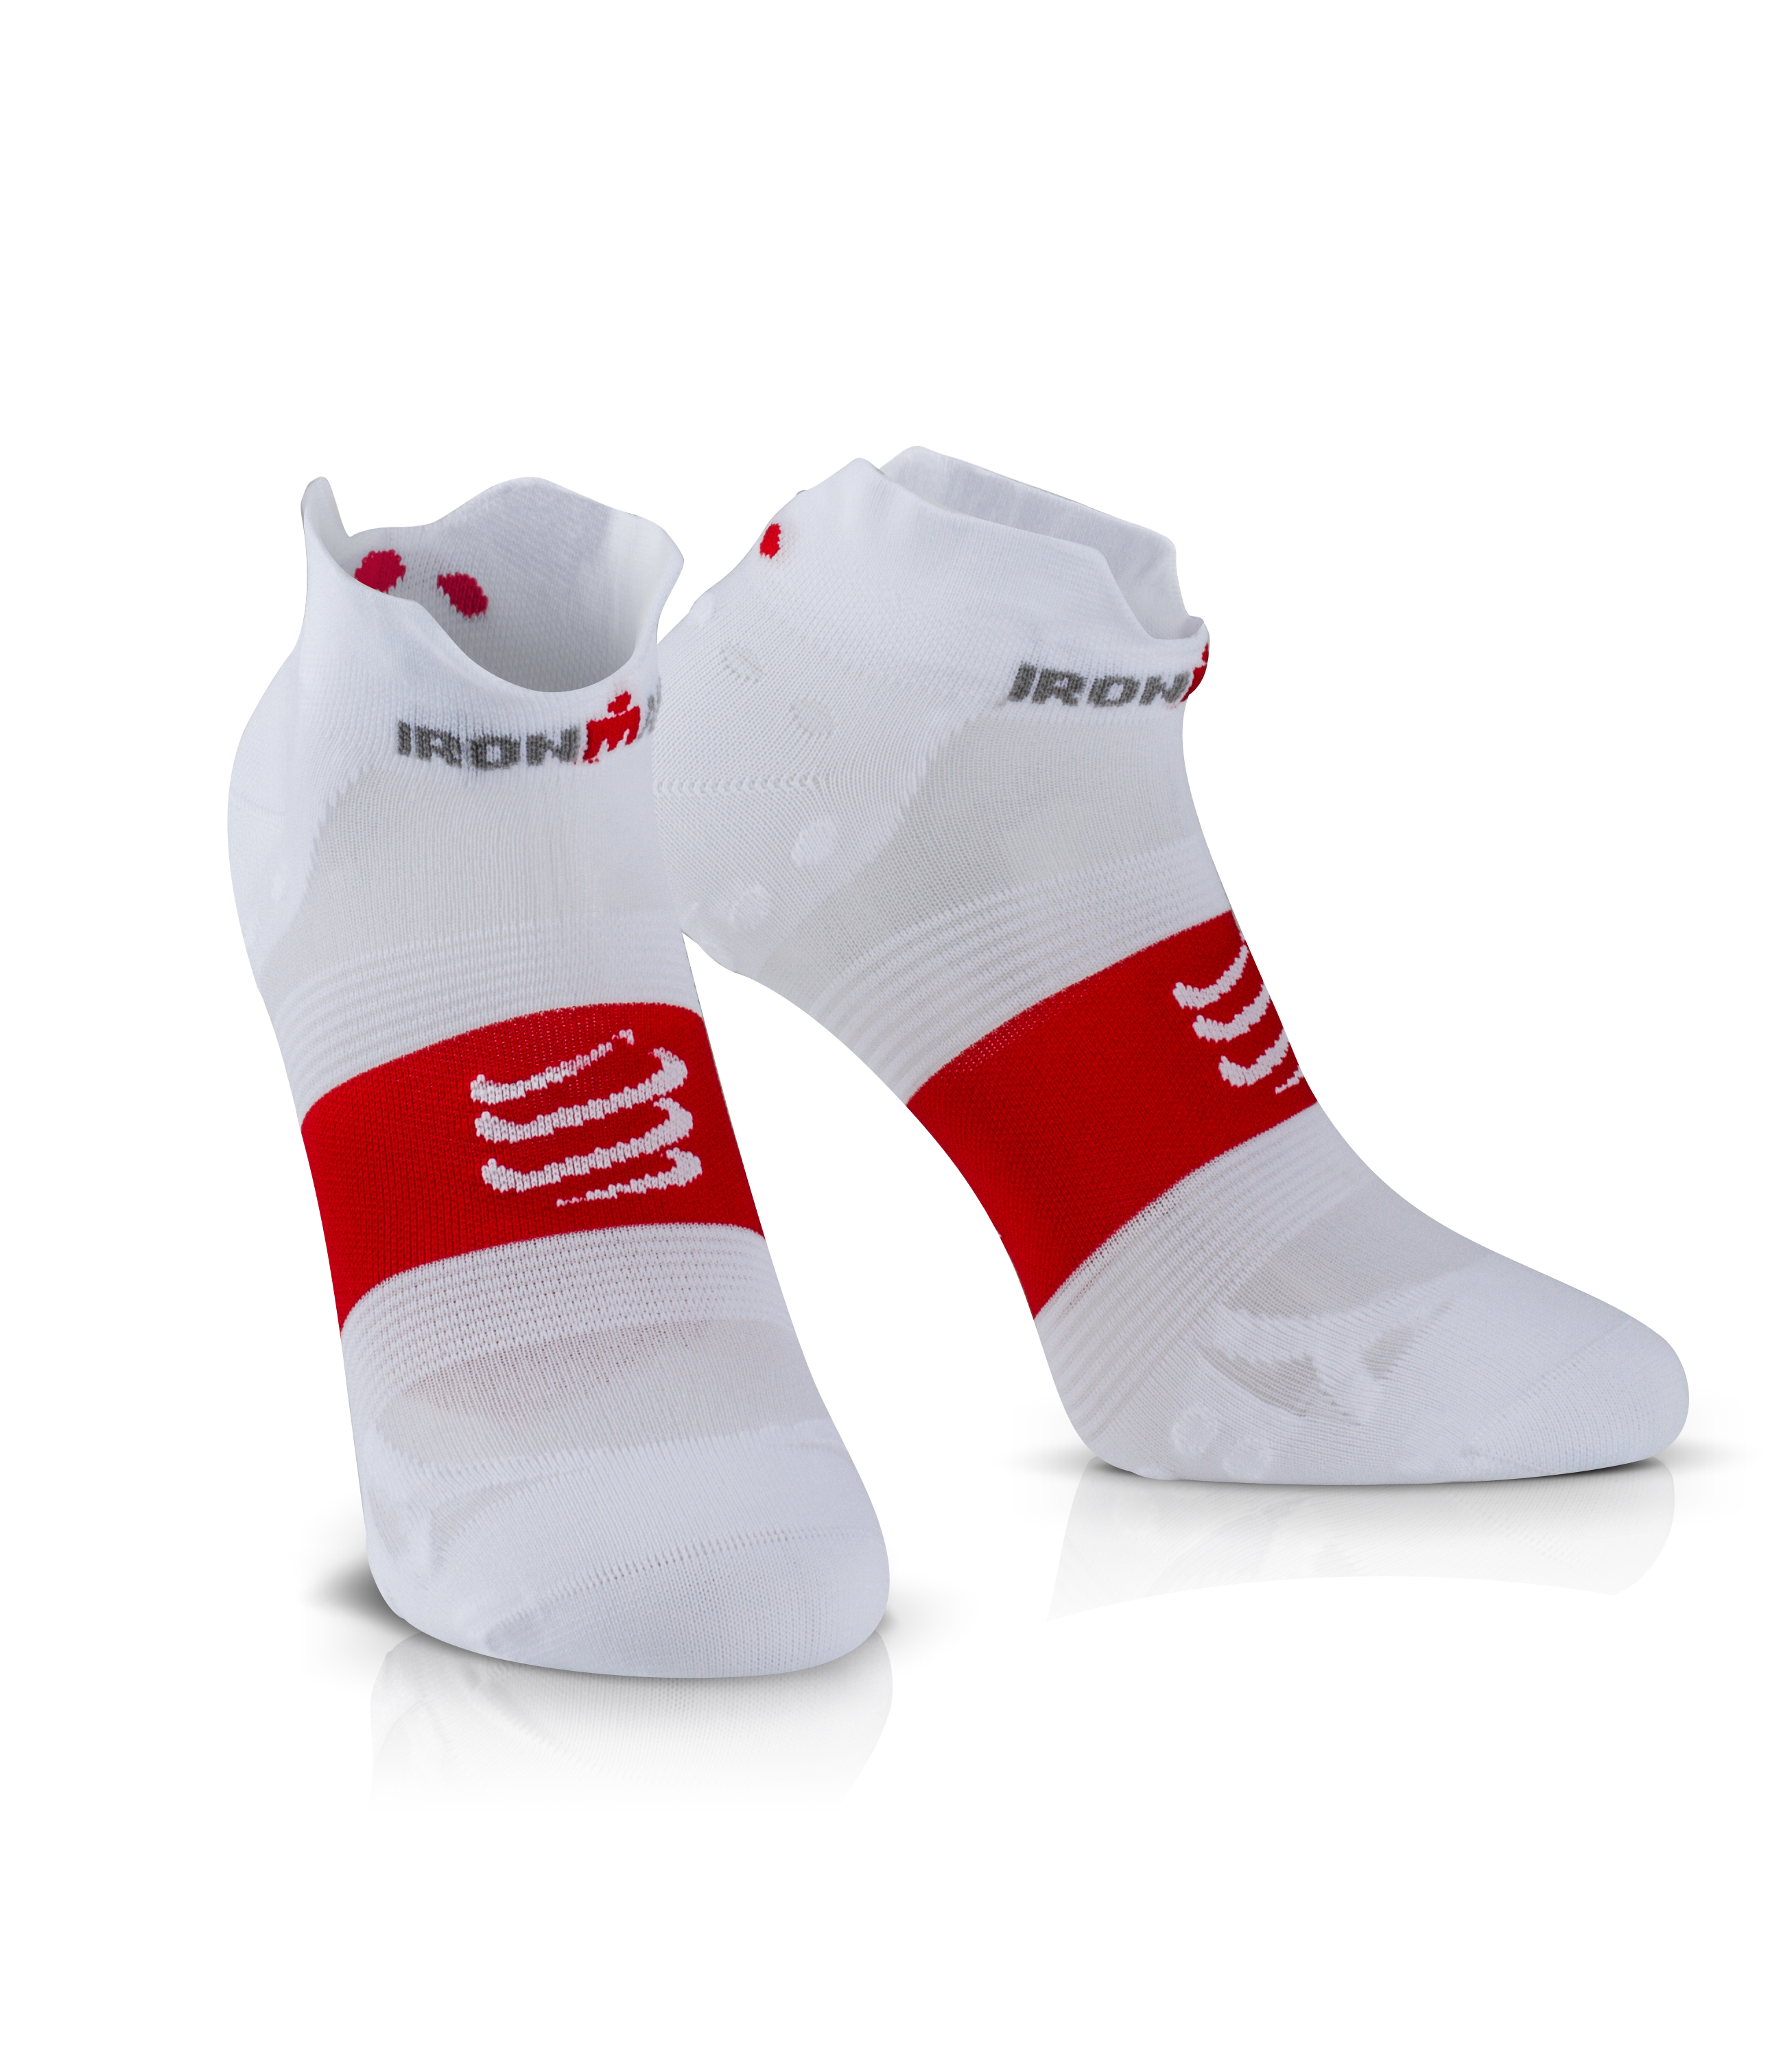 IRONMAN COMPRESSPORT Pro Racing Socks V3 Ultralight Low - White